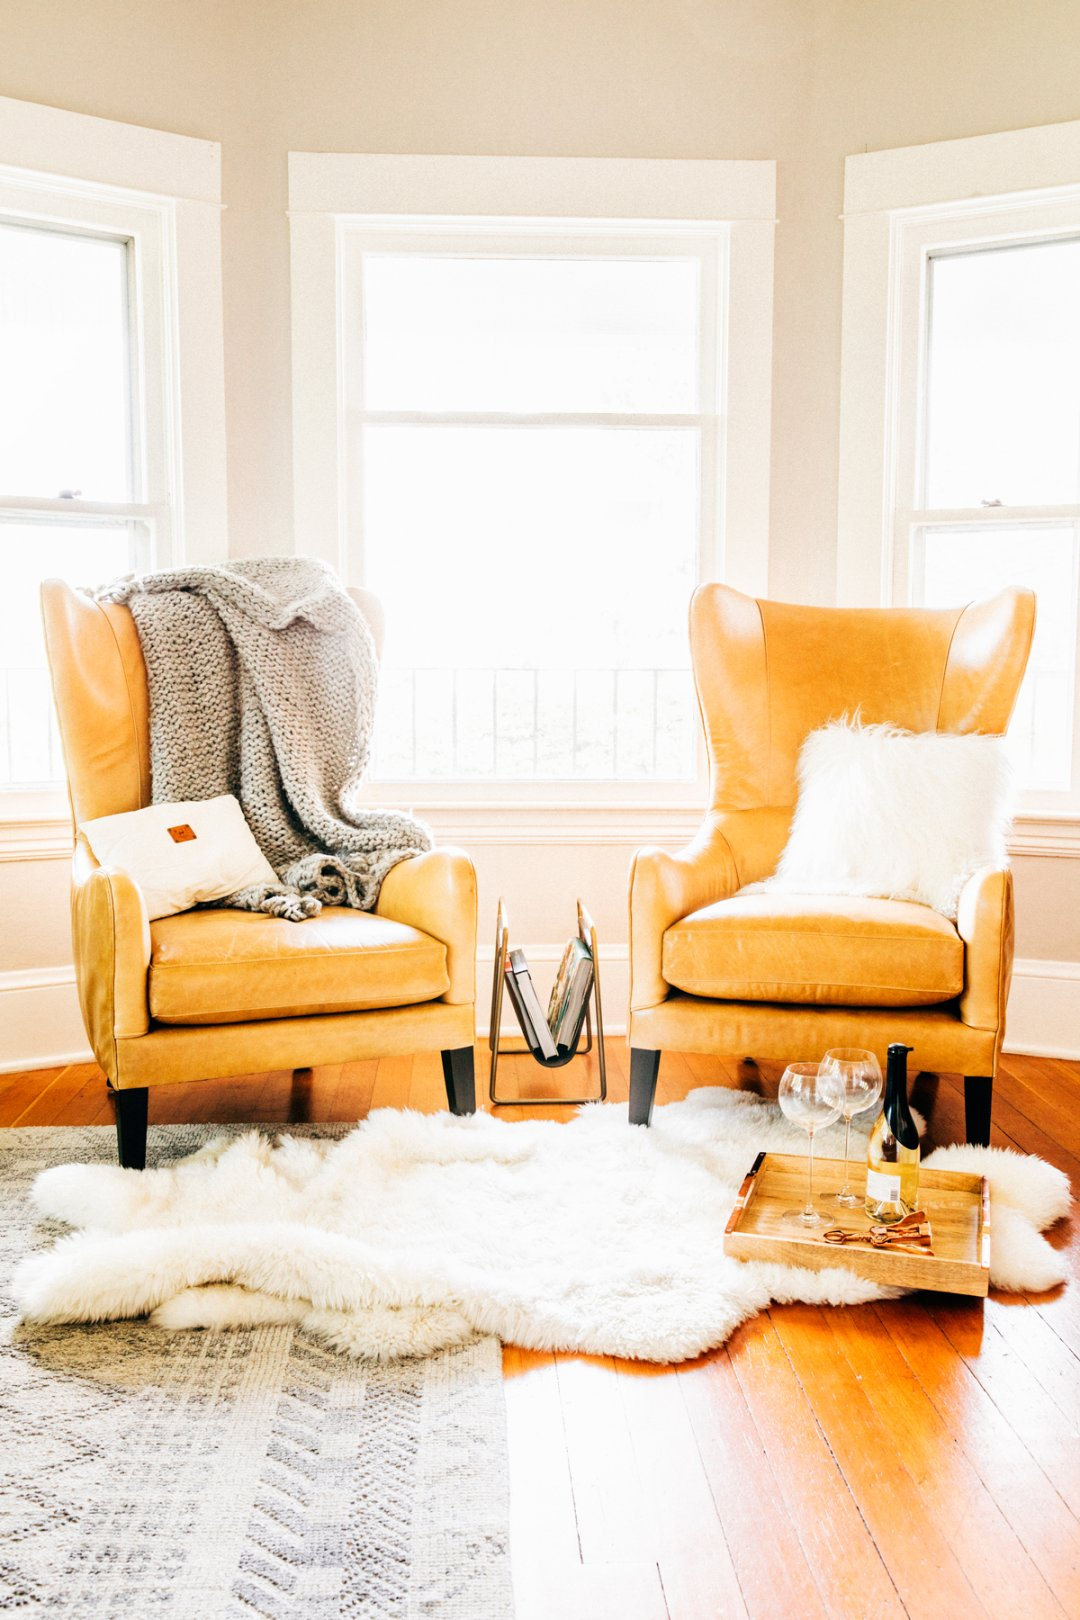 How to Style Bay Windows | The Crate and Barrel Blog